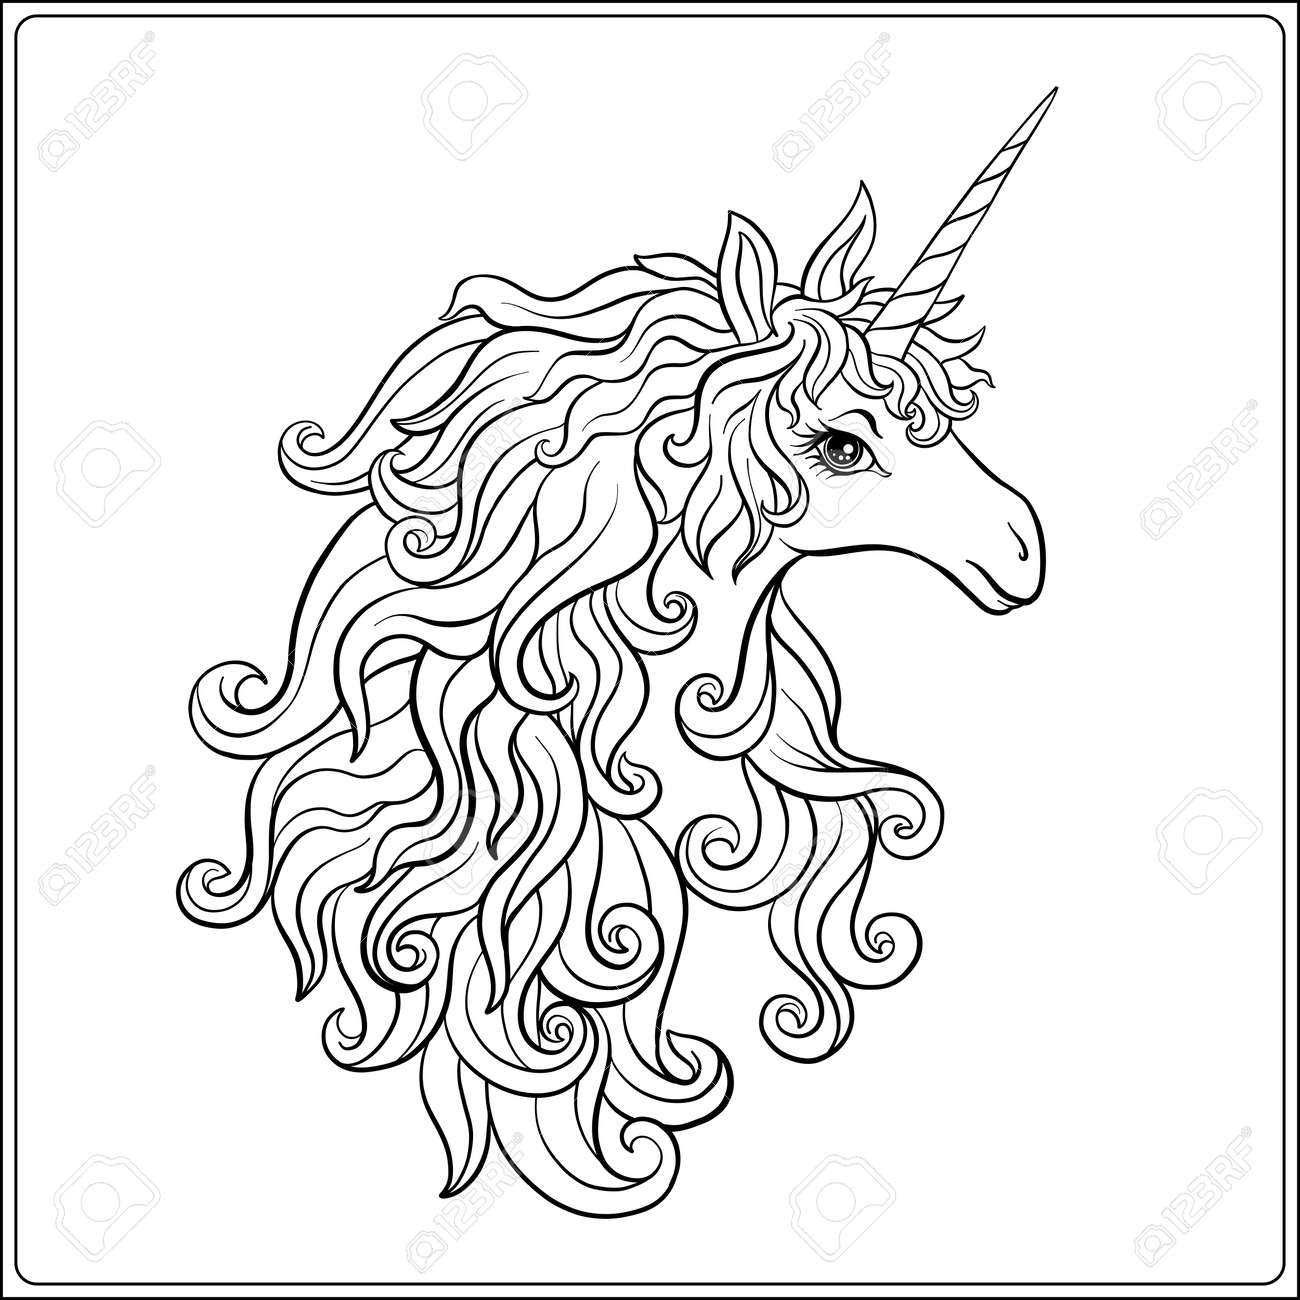 Bilder Zum Ausmalen Einhorn Stock Photo